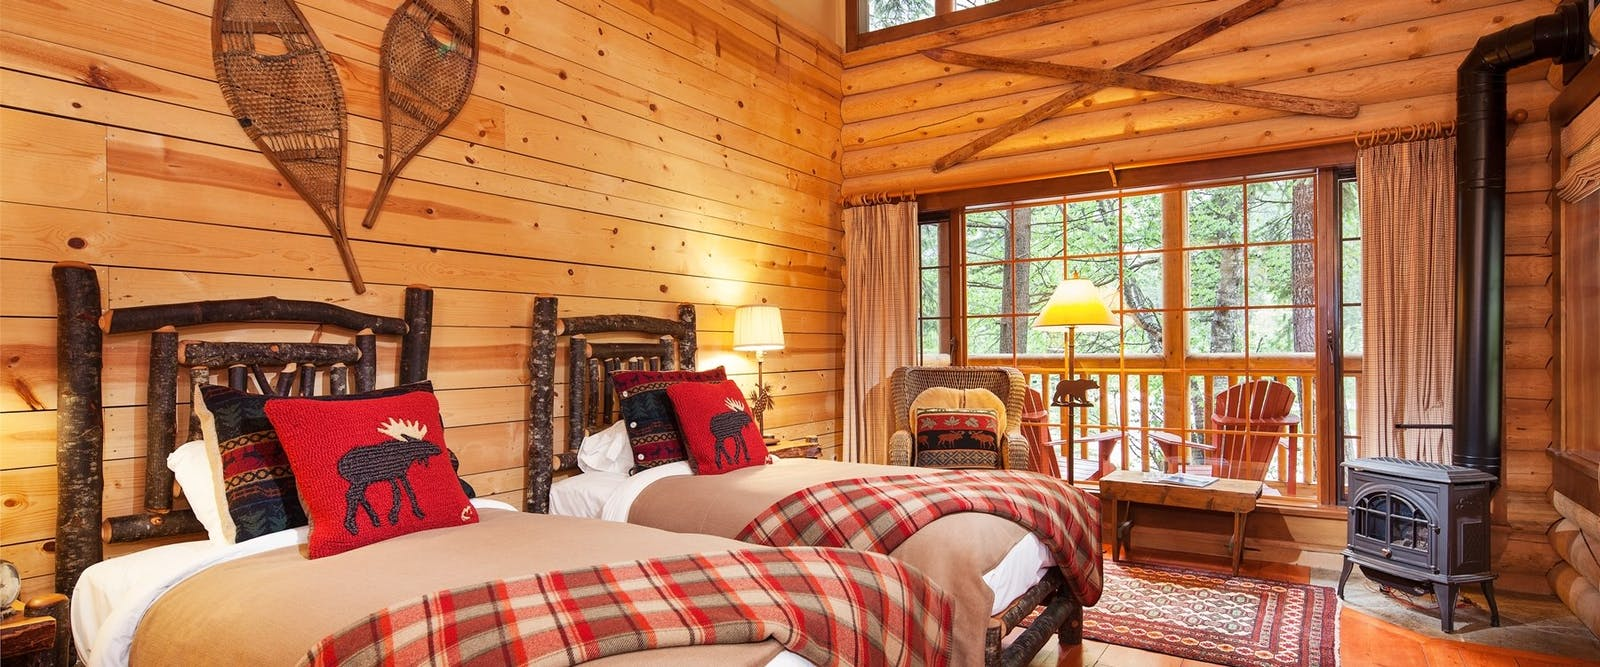 Twin bed lodge at Cathedral Mountain Lodge, British Columbia